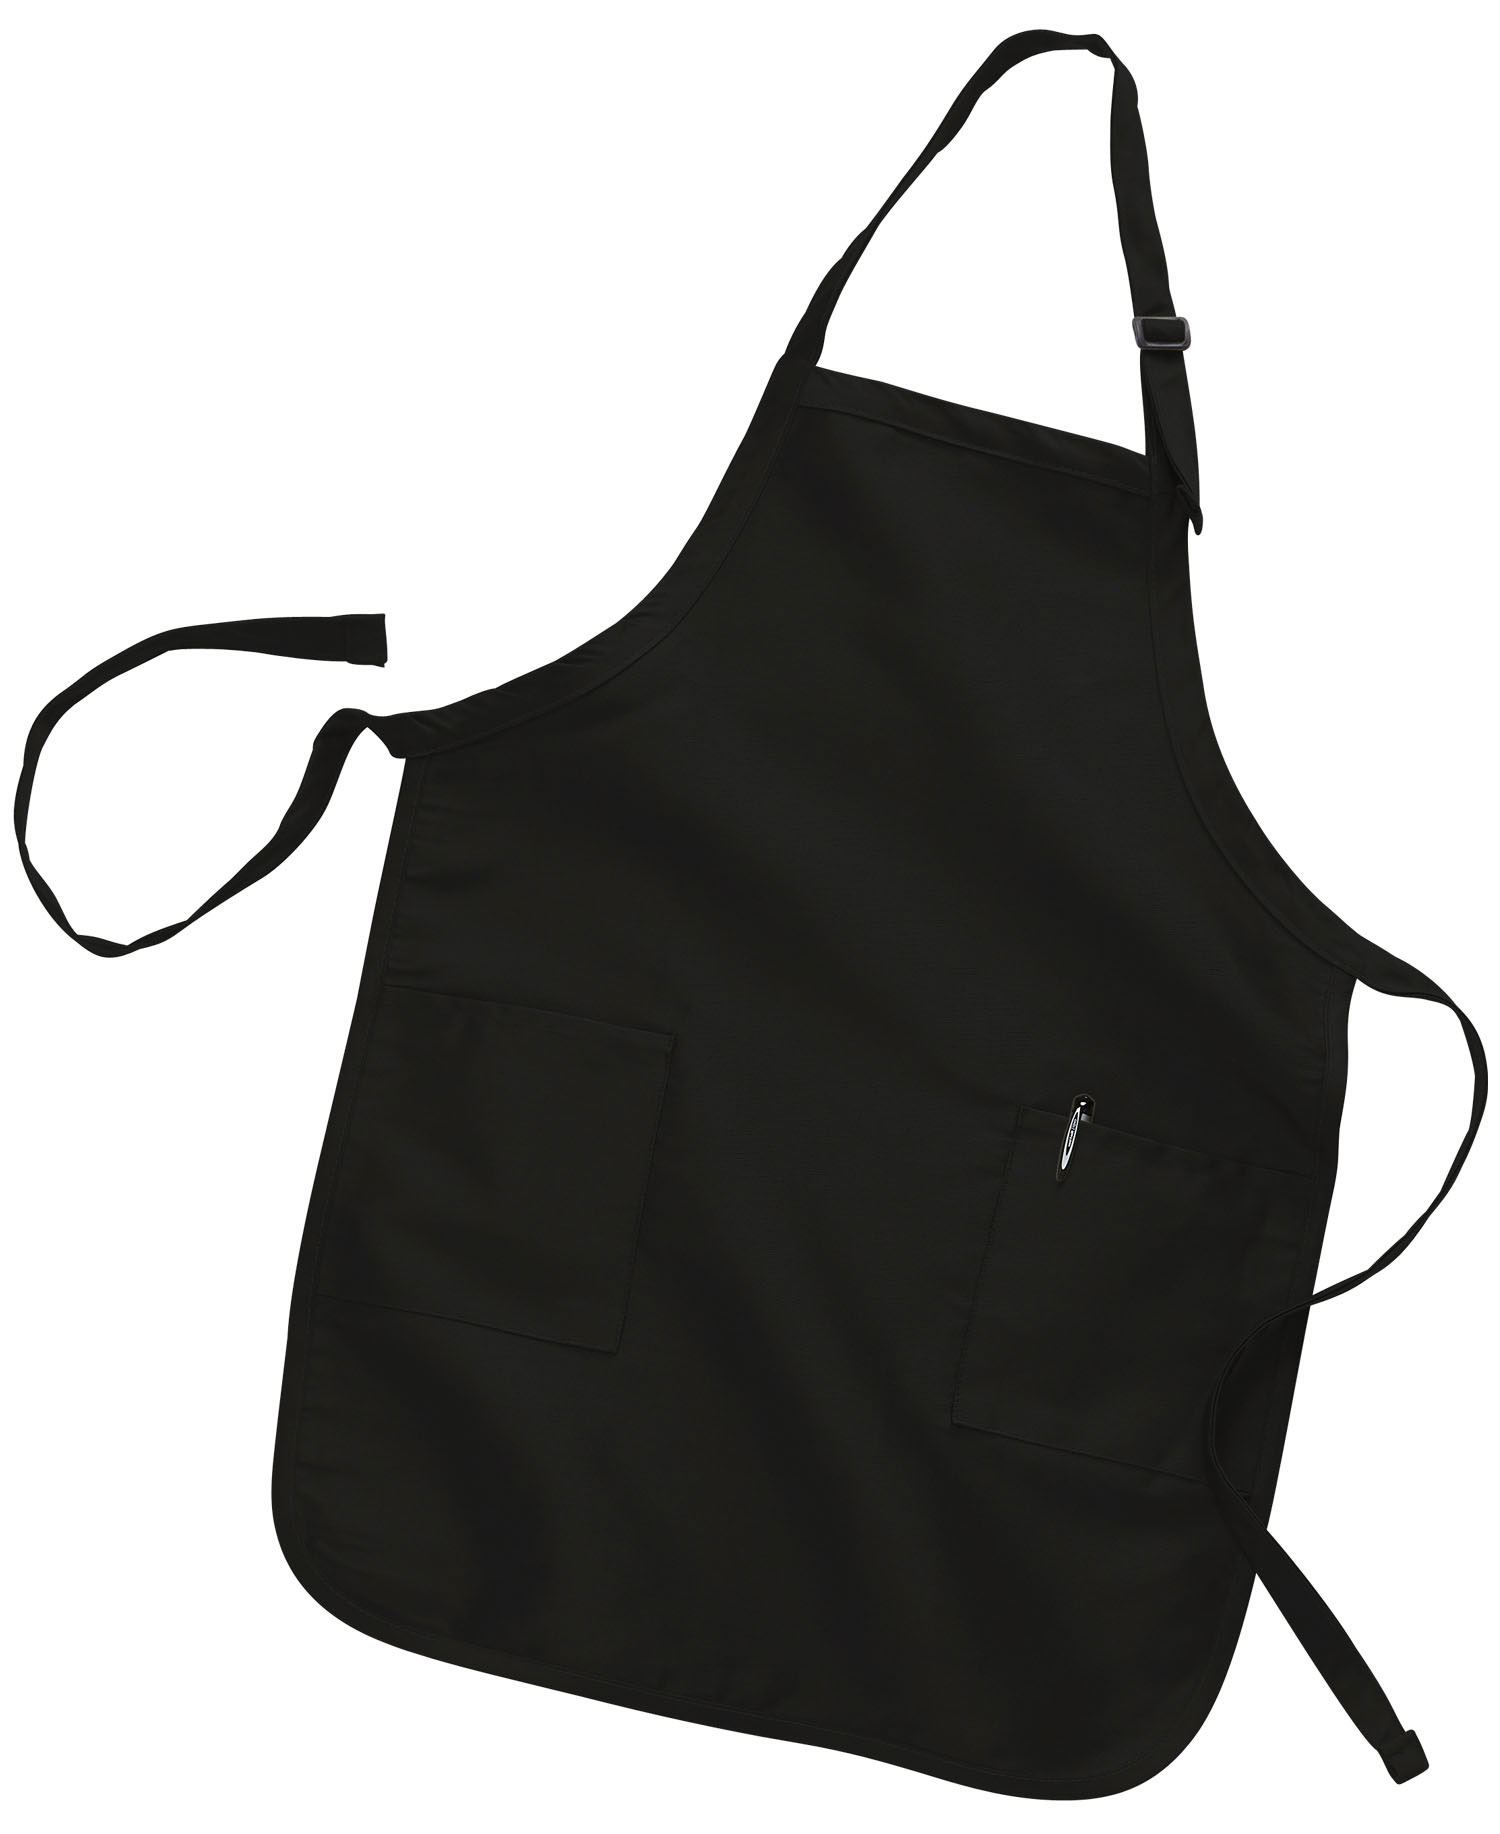 Q-Tees of California - Q4350 Full Length Apron - 2 Pockets